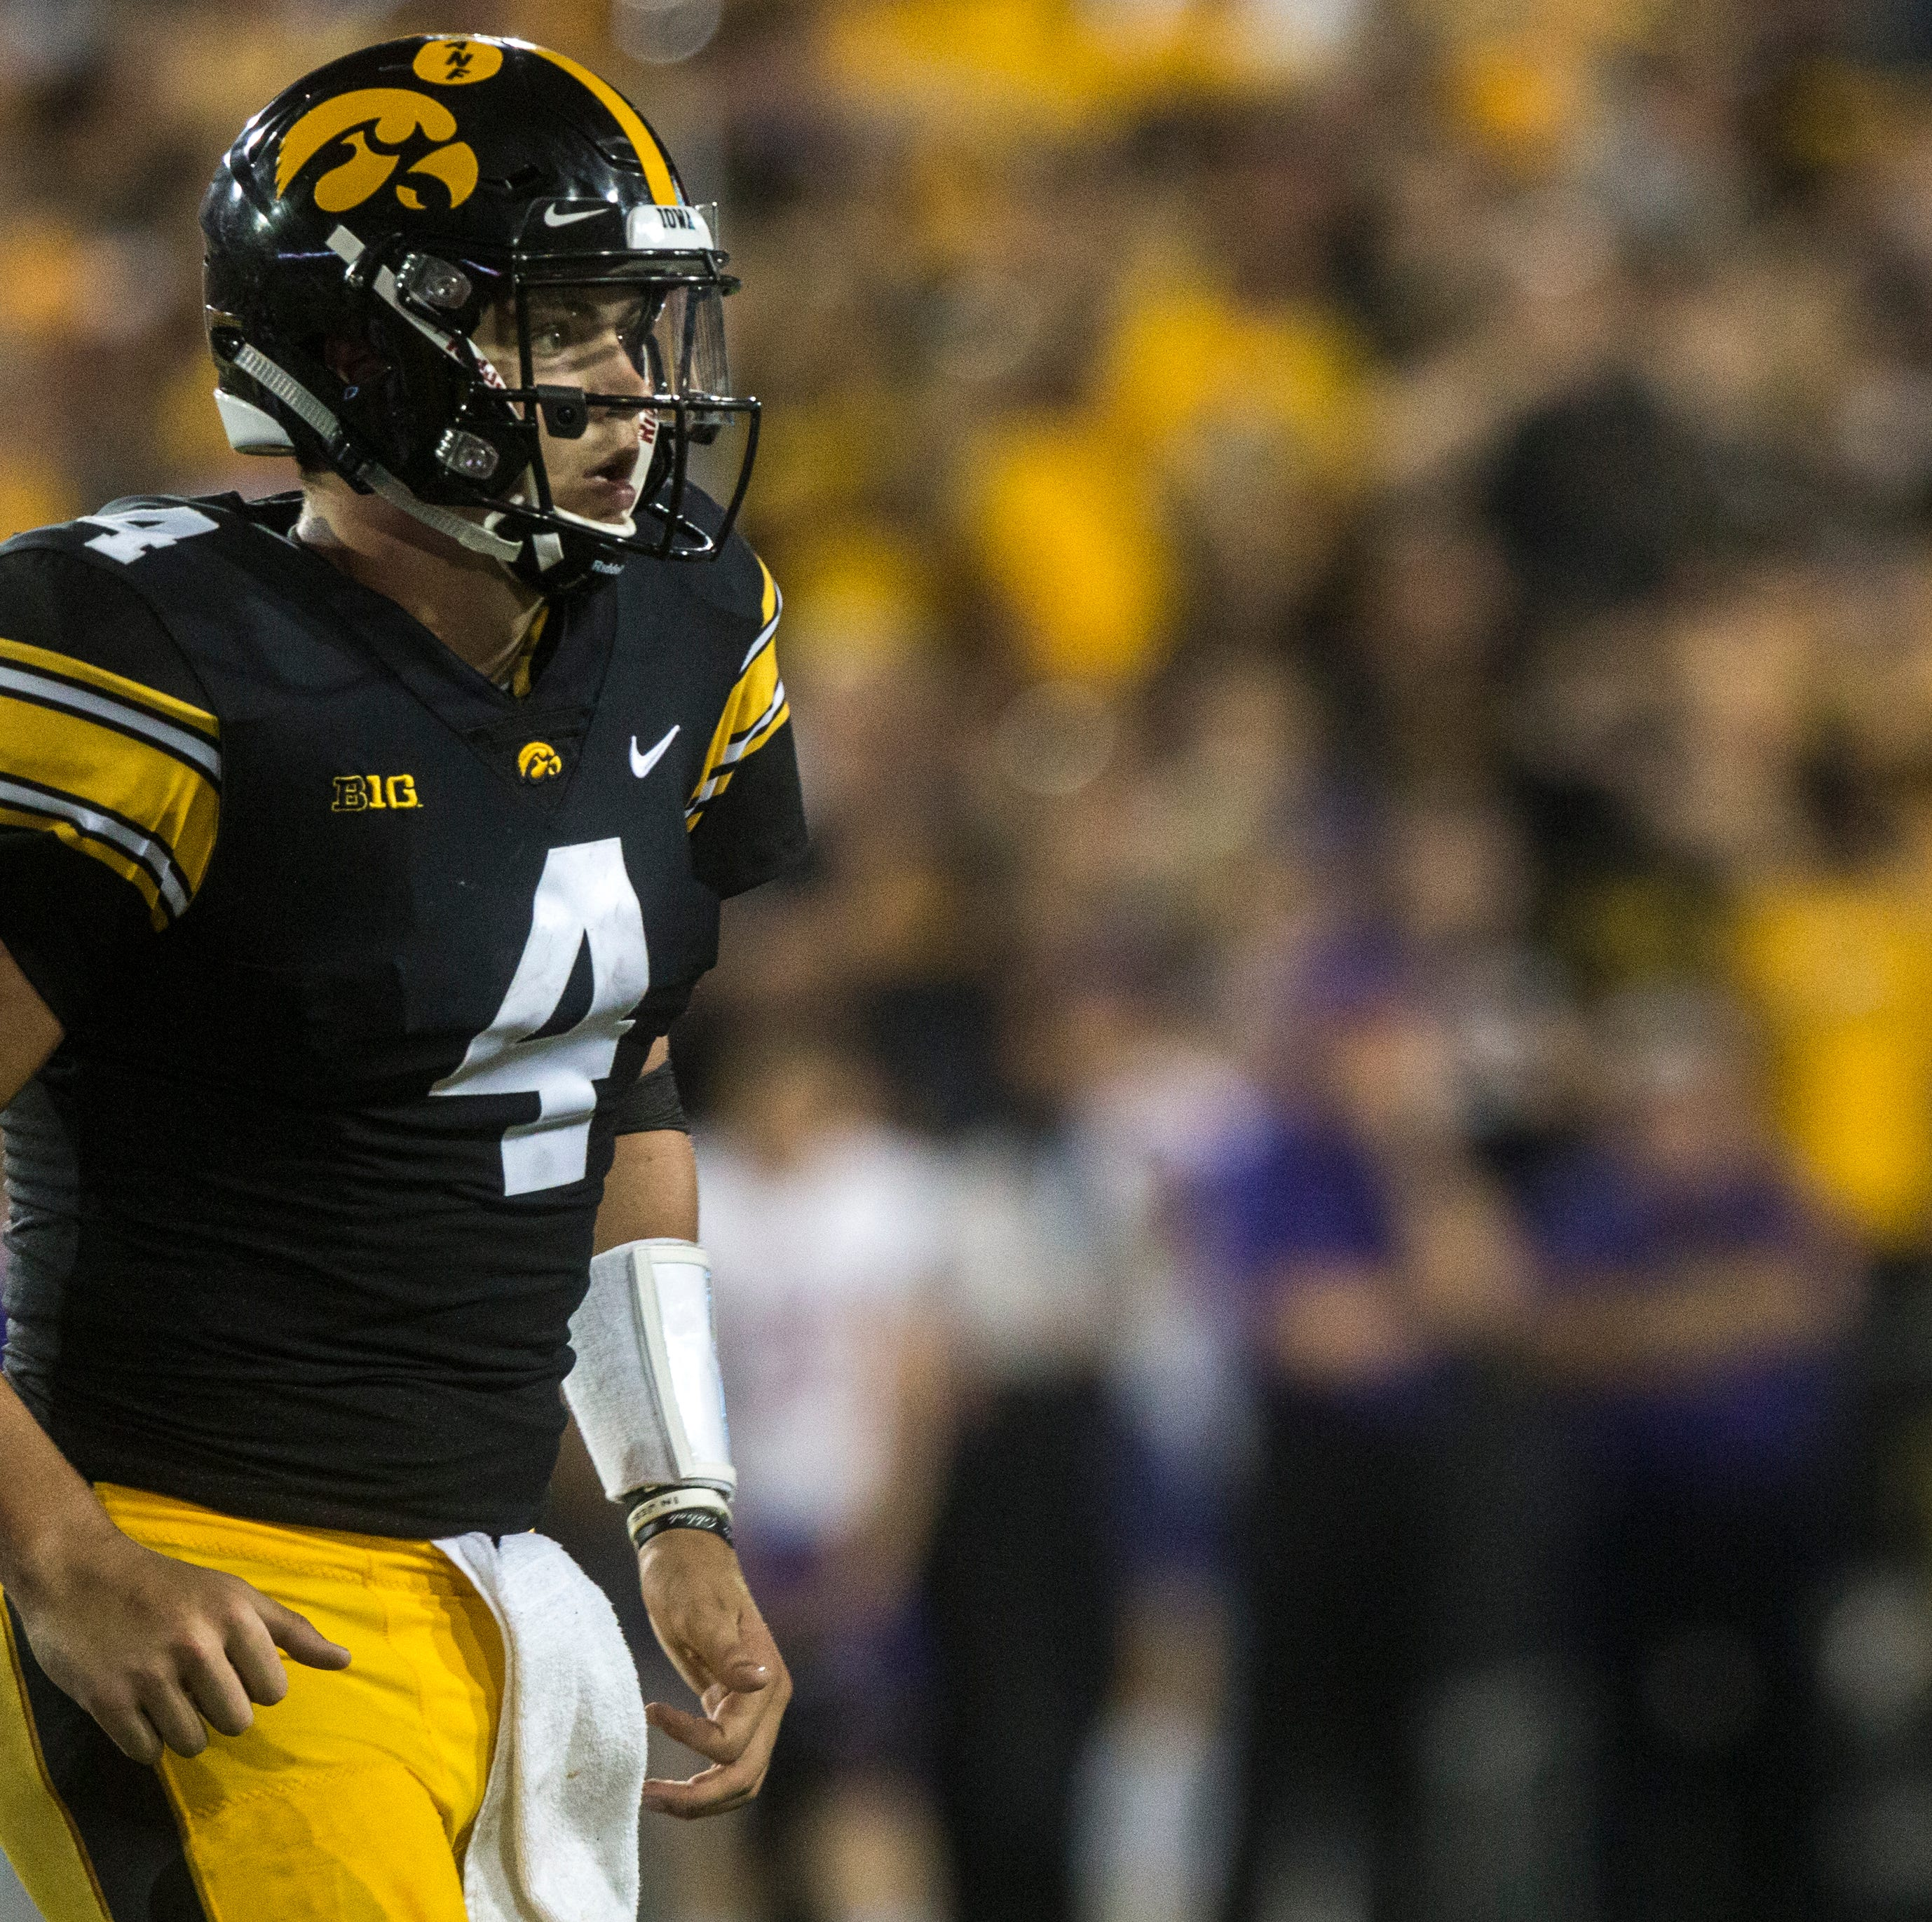 Iowa offense finds a groove and spreads the love in blowout win over Northern Iowa